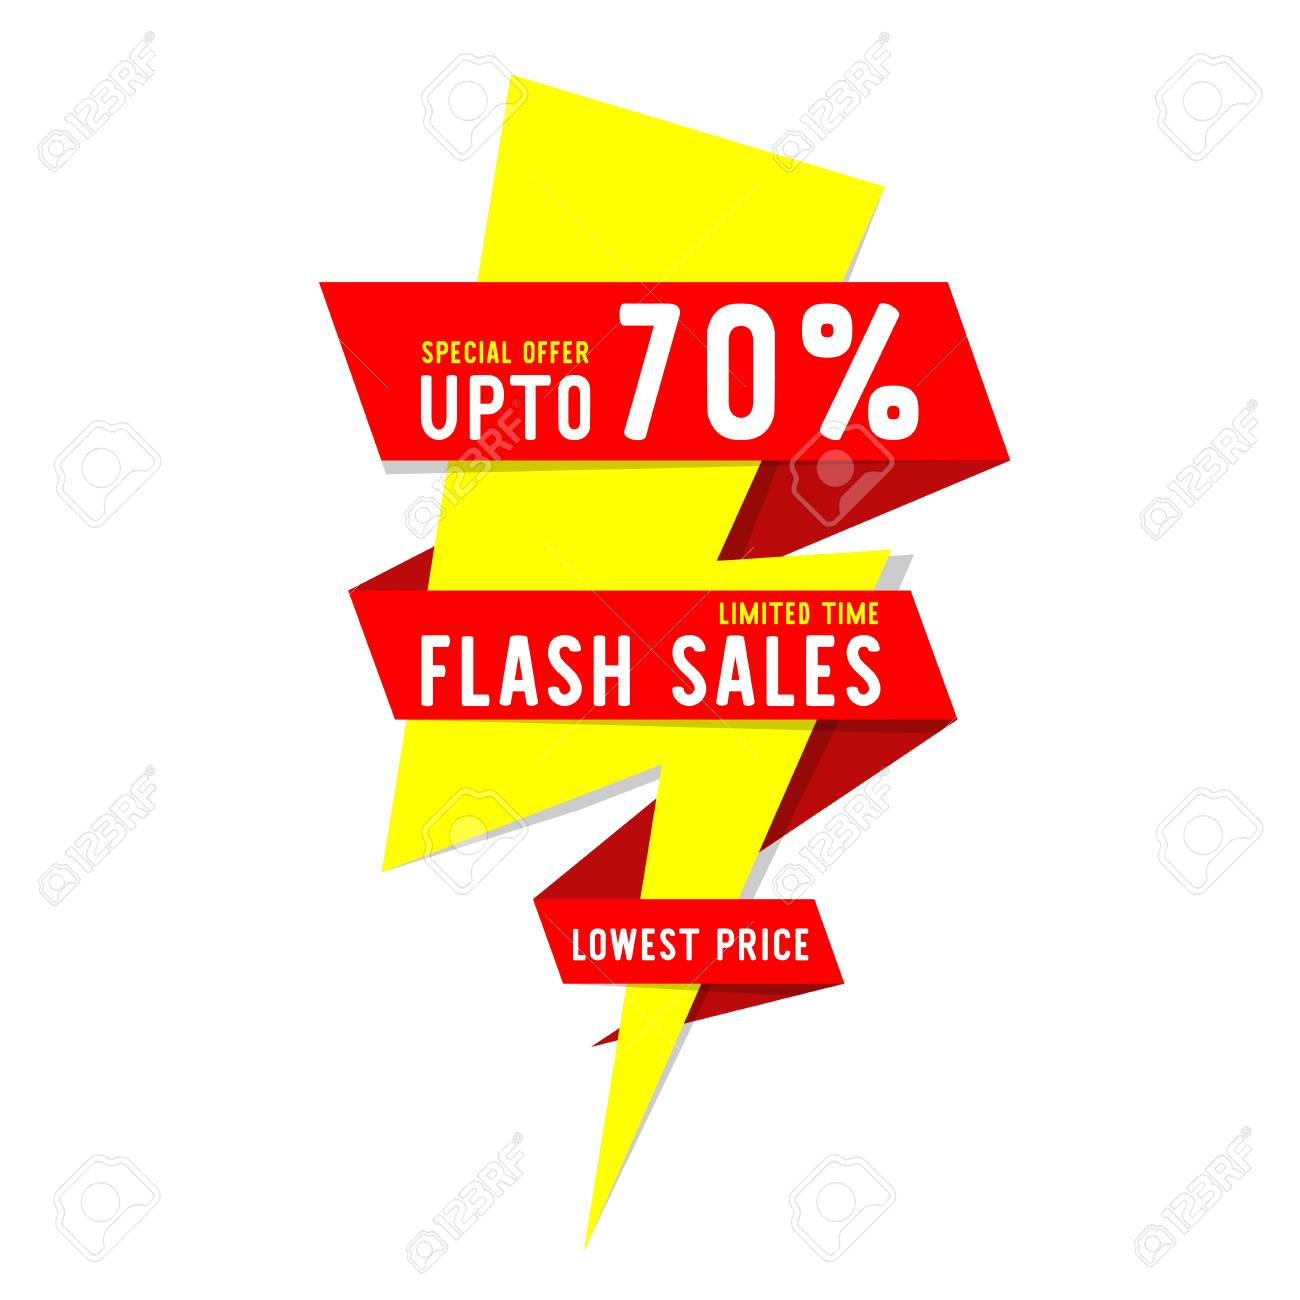 5cd82b3fe Flash sales limited time special offer up to 70% lowest price with ribbon  and thunder